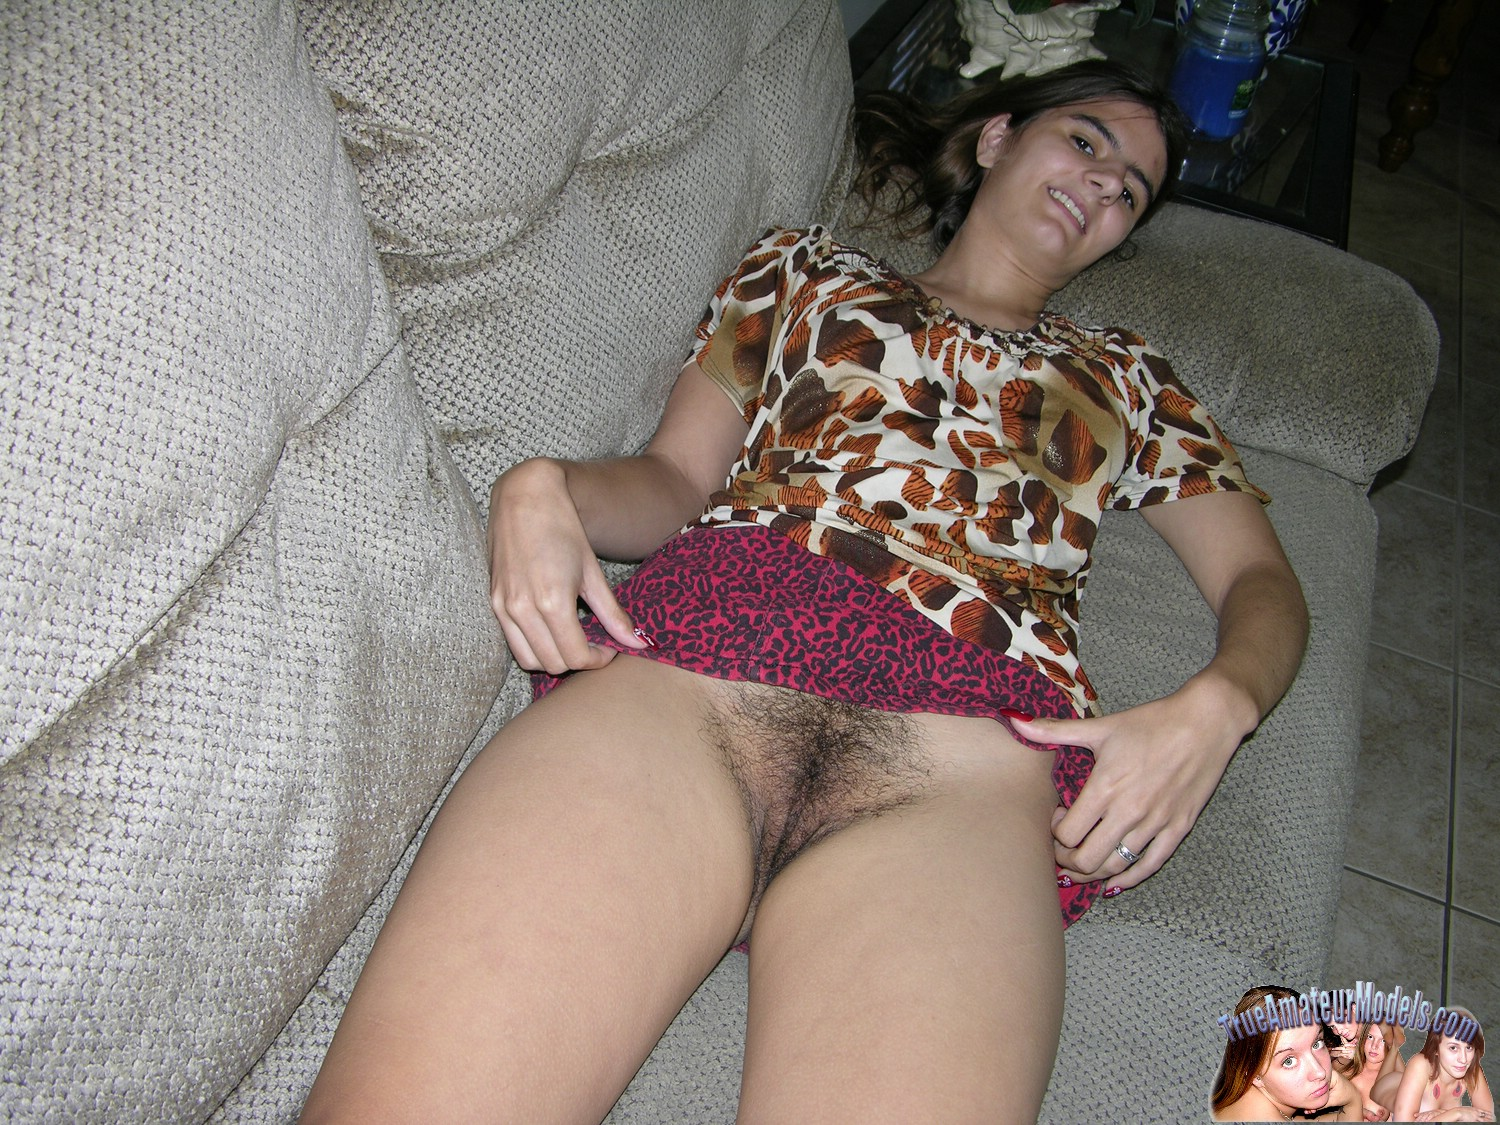 Hairy Native American Pussy Cheap hairy pussy modeling from desi amateur babe nissa